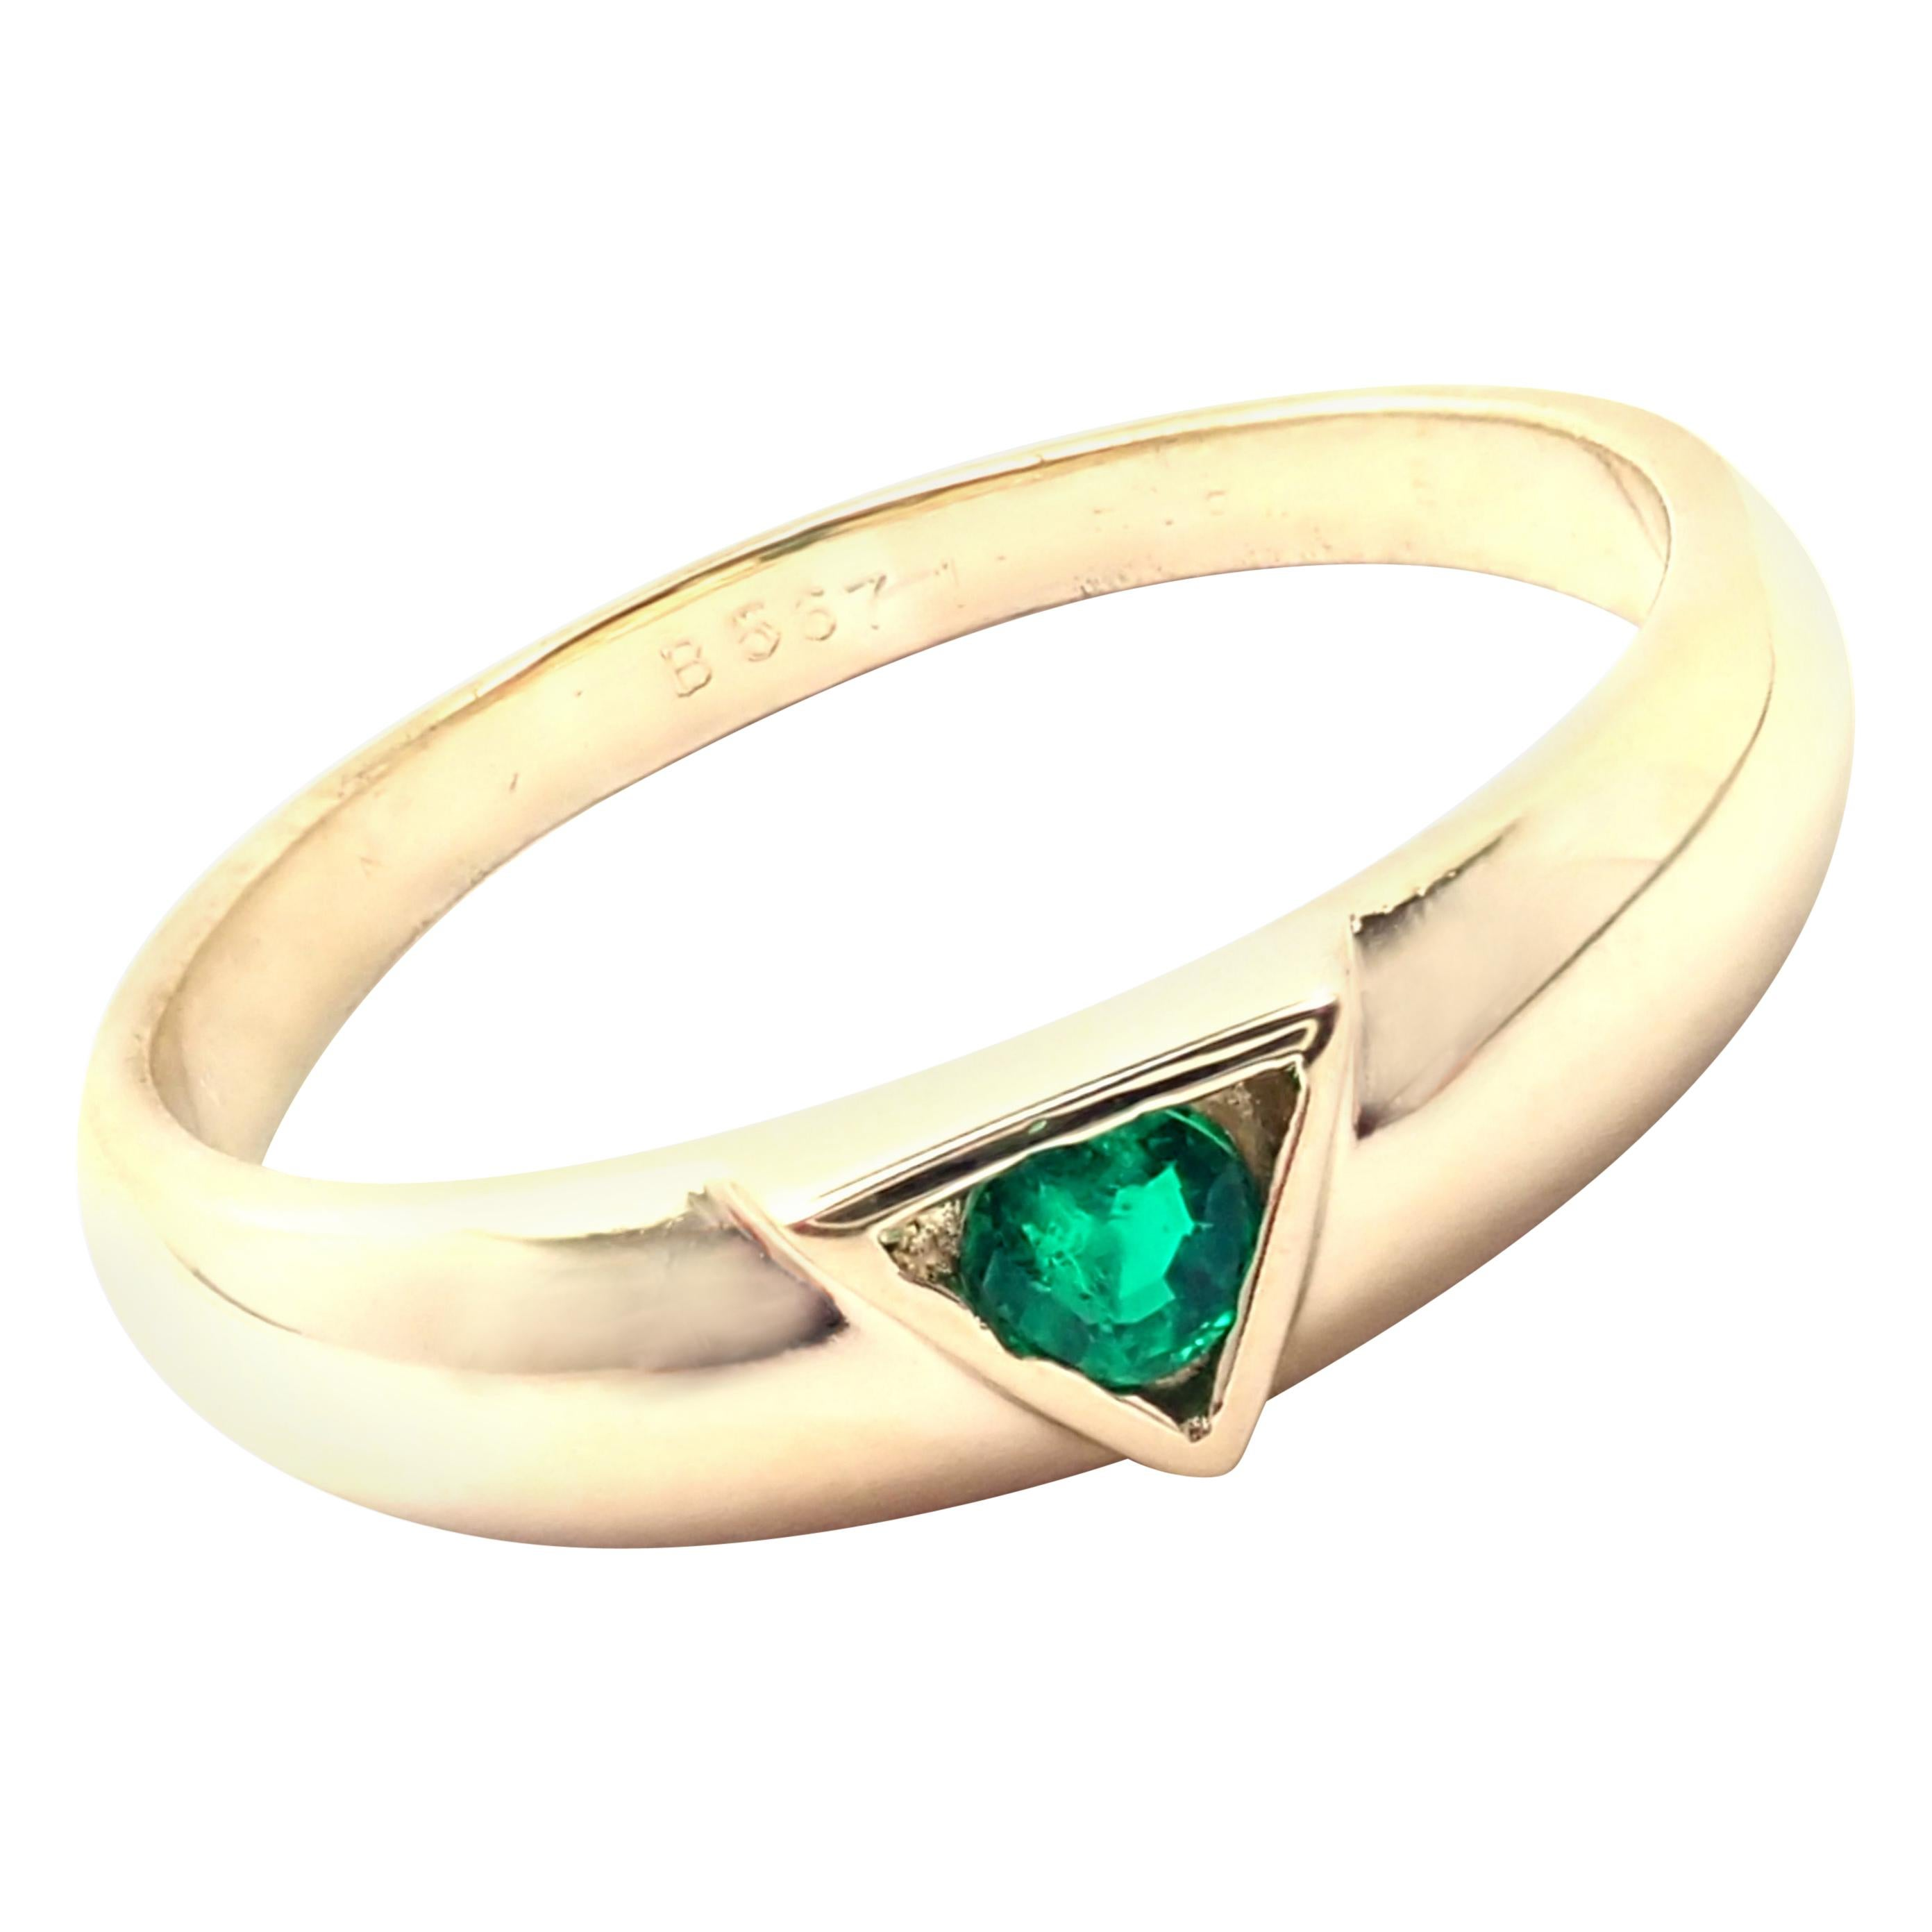 Van Cleef & Arpels Emerald Yellow Gold Band Ring